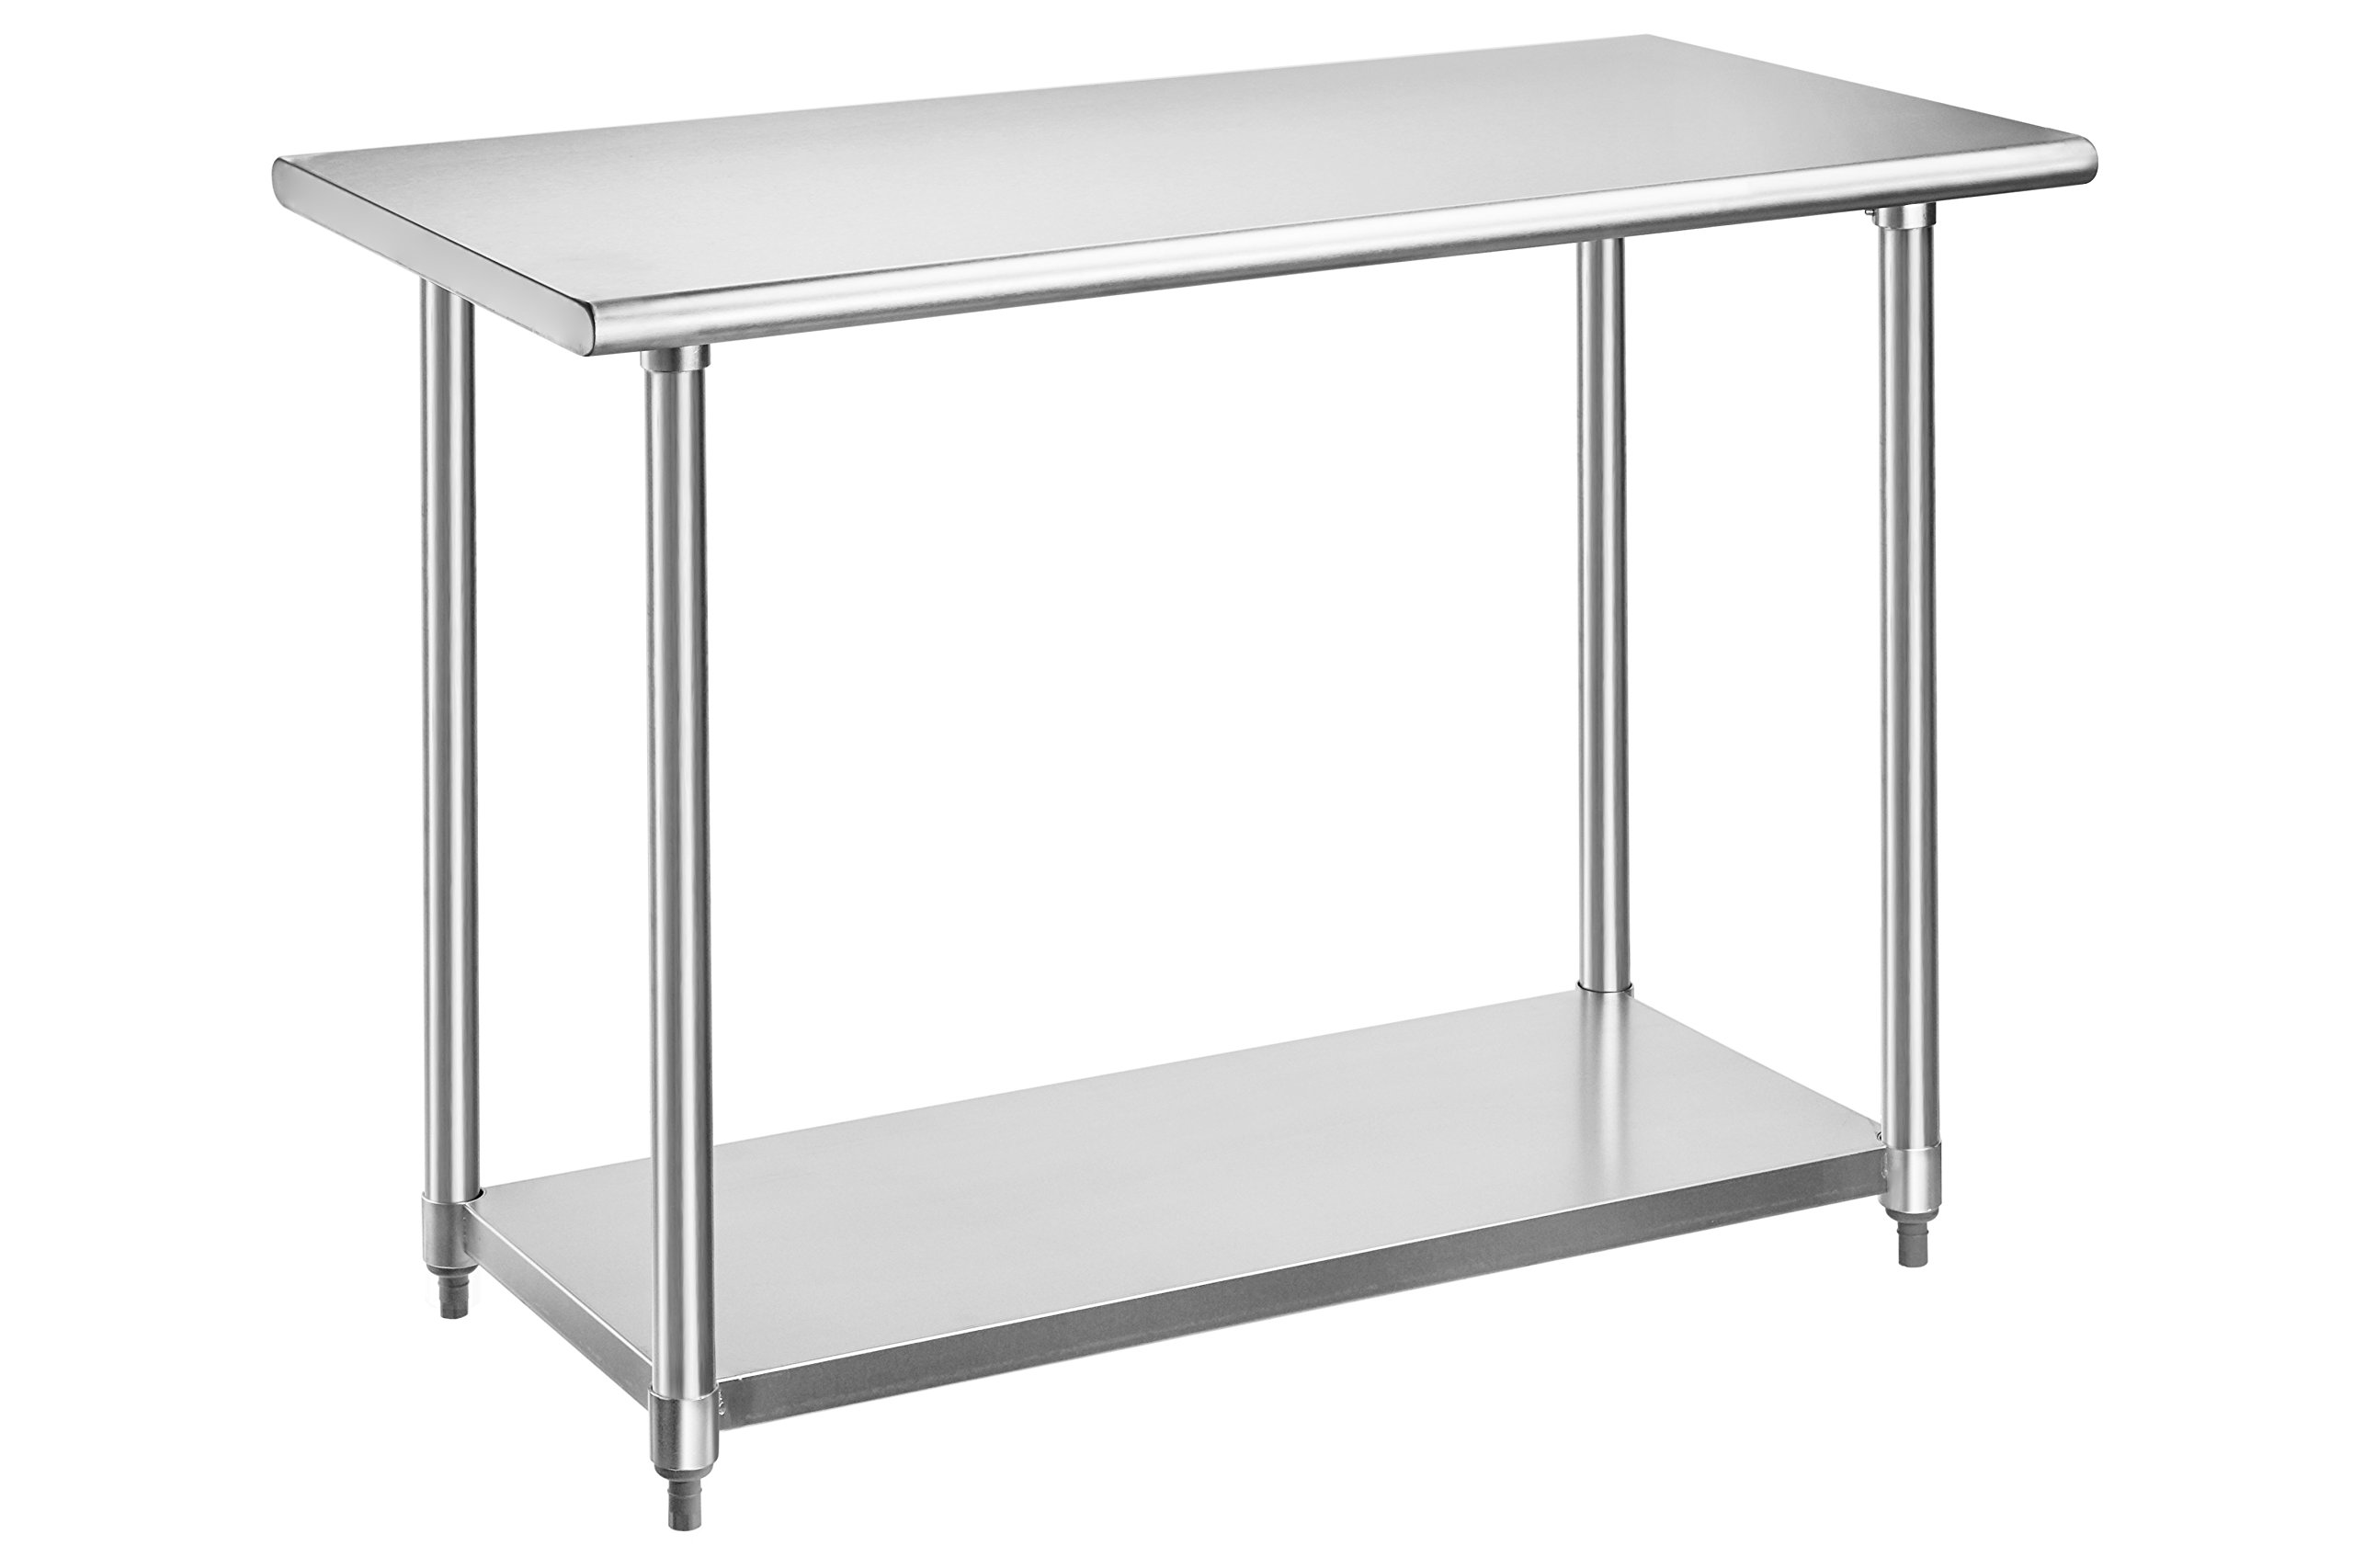 Rockpoint Beacon Stainless Steel Table NSF Certified, 48-Inch by ROCKPOINT